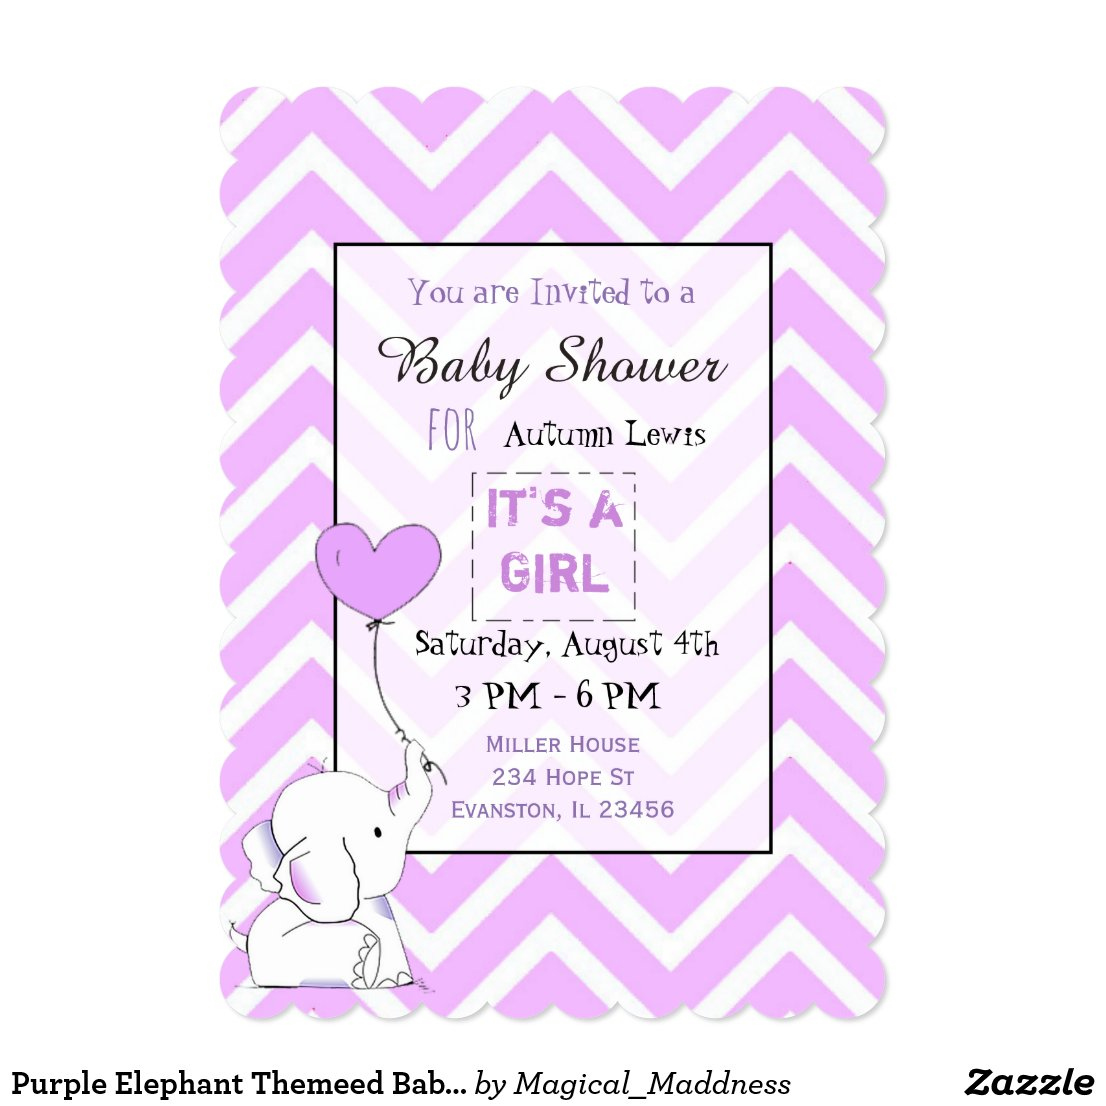 Purple Elephant Themeed Baby Shower Invitations